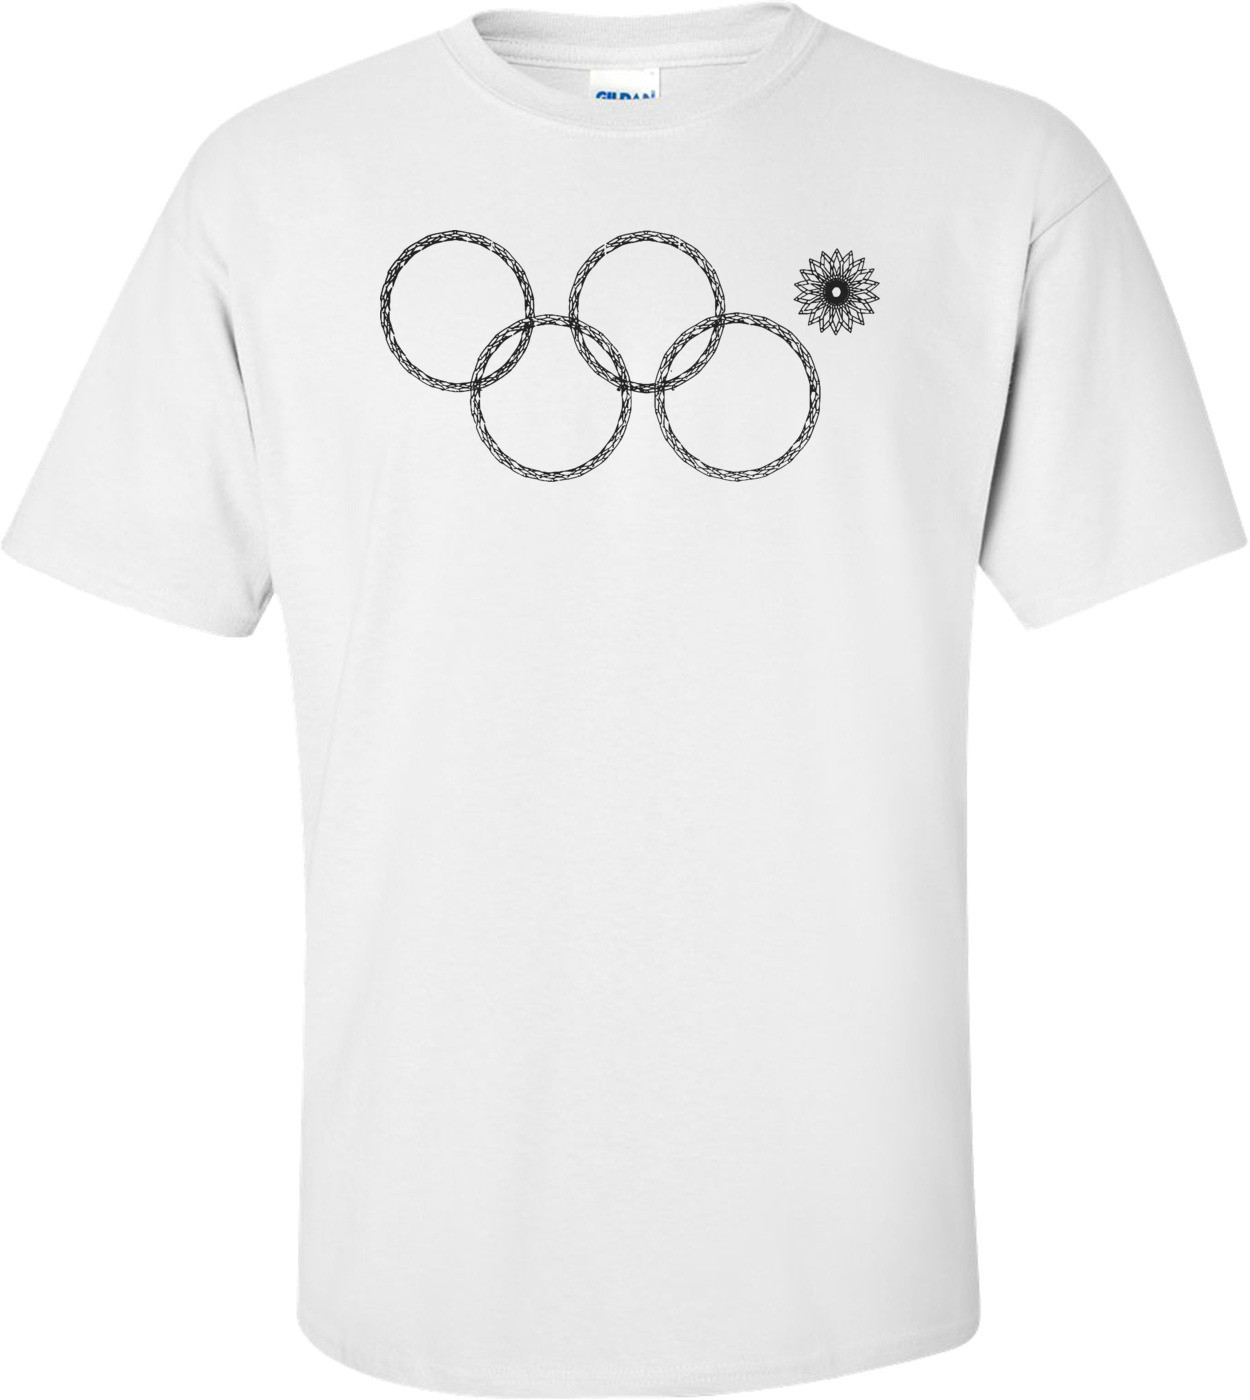 Sochi Olympic Ring Fail Funny Shirt